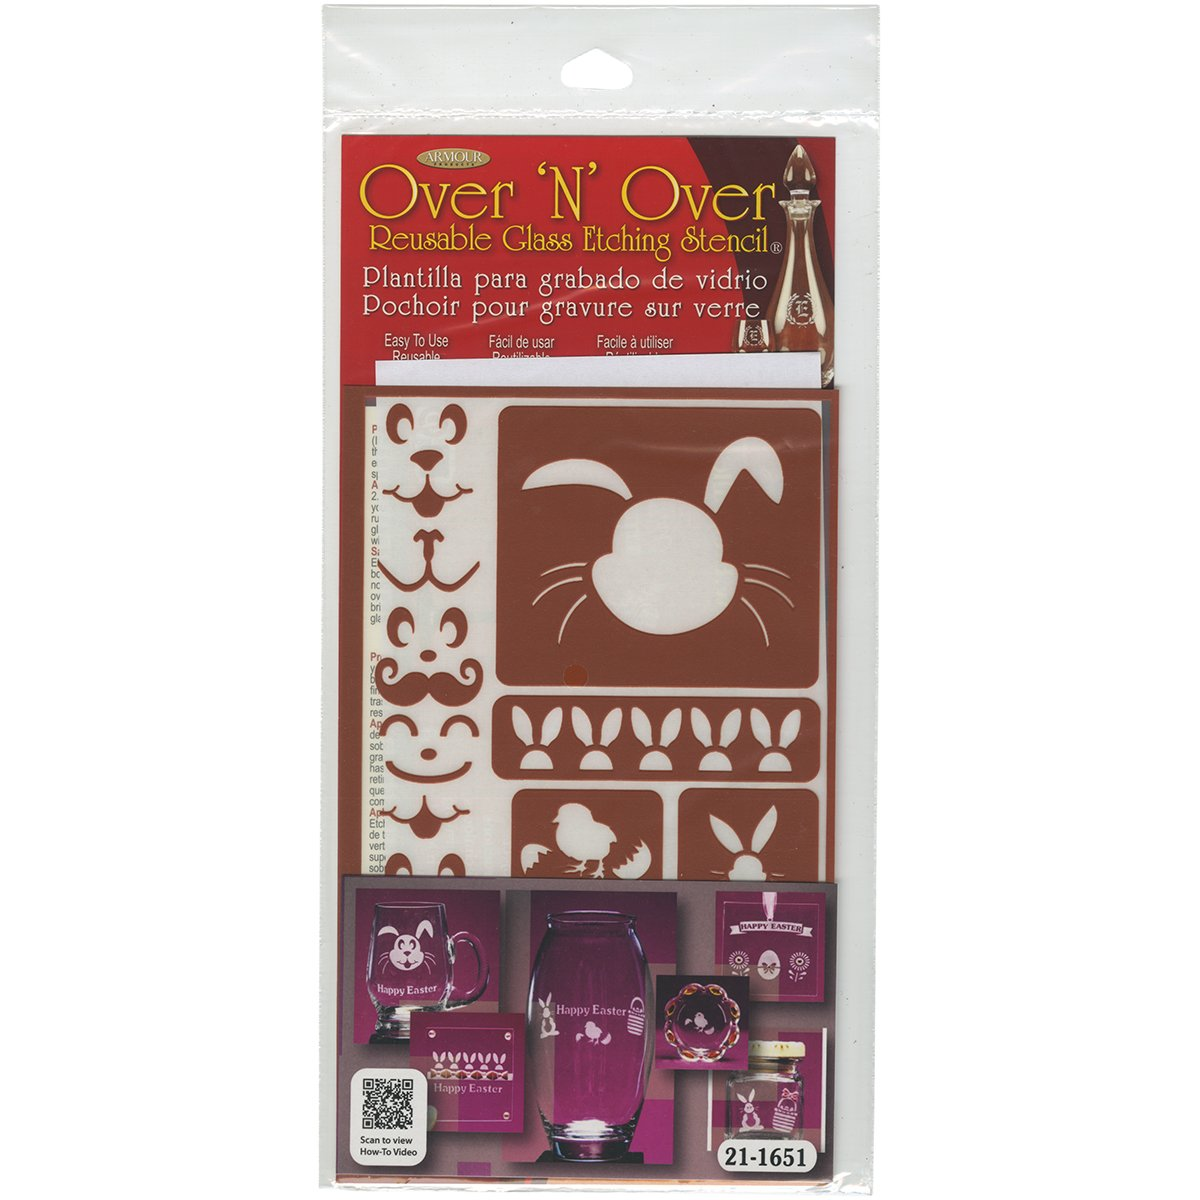 Over 'N' Over Reusable Stencils 5X8-Easter Armour Products